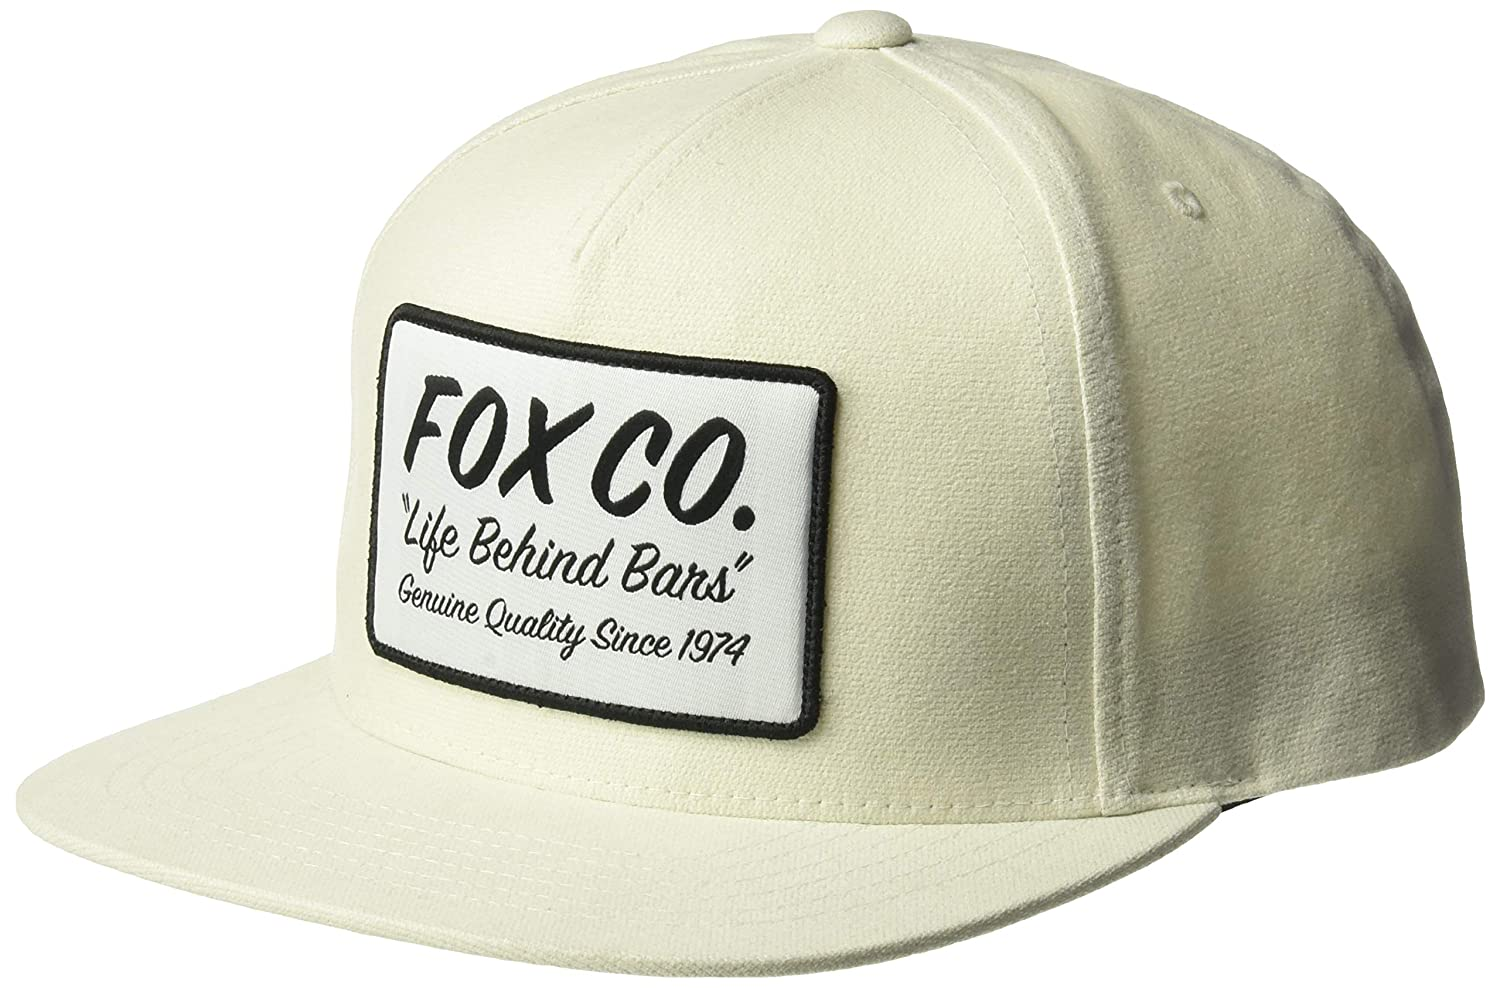 Fox Gorras Resin Bone White 110 Snapback: Amazon.es: Ropa y accesorios